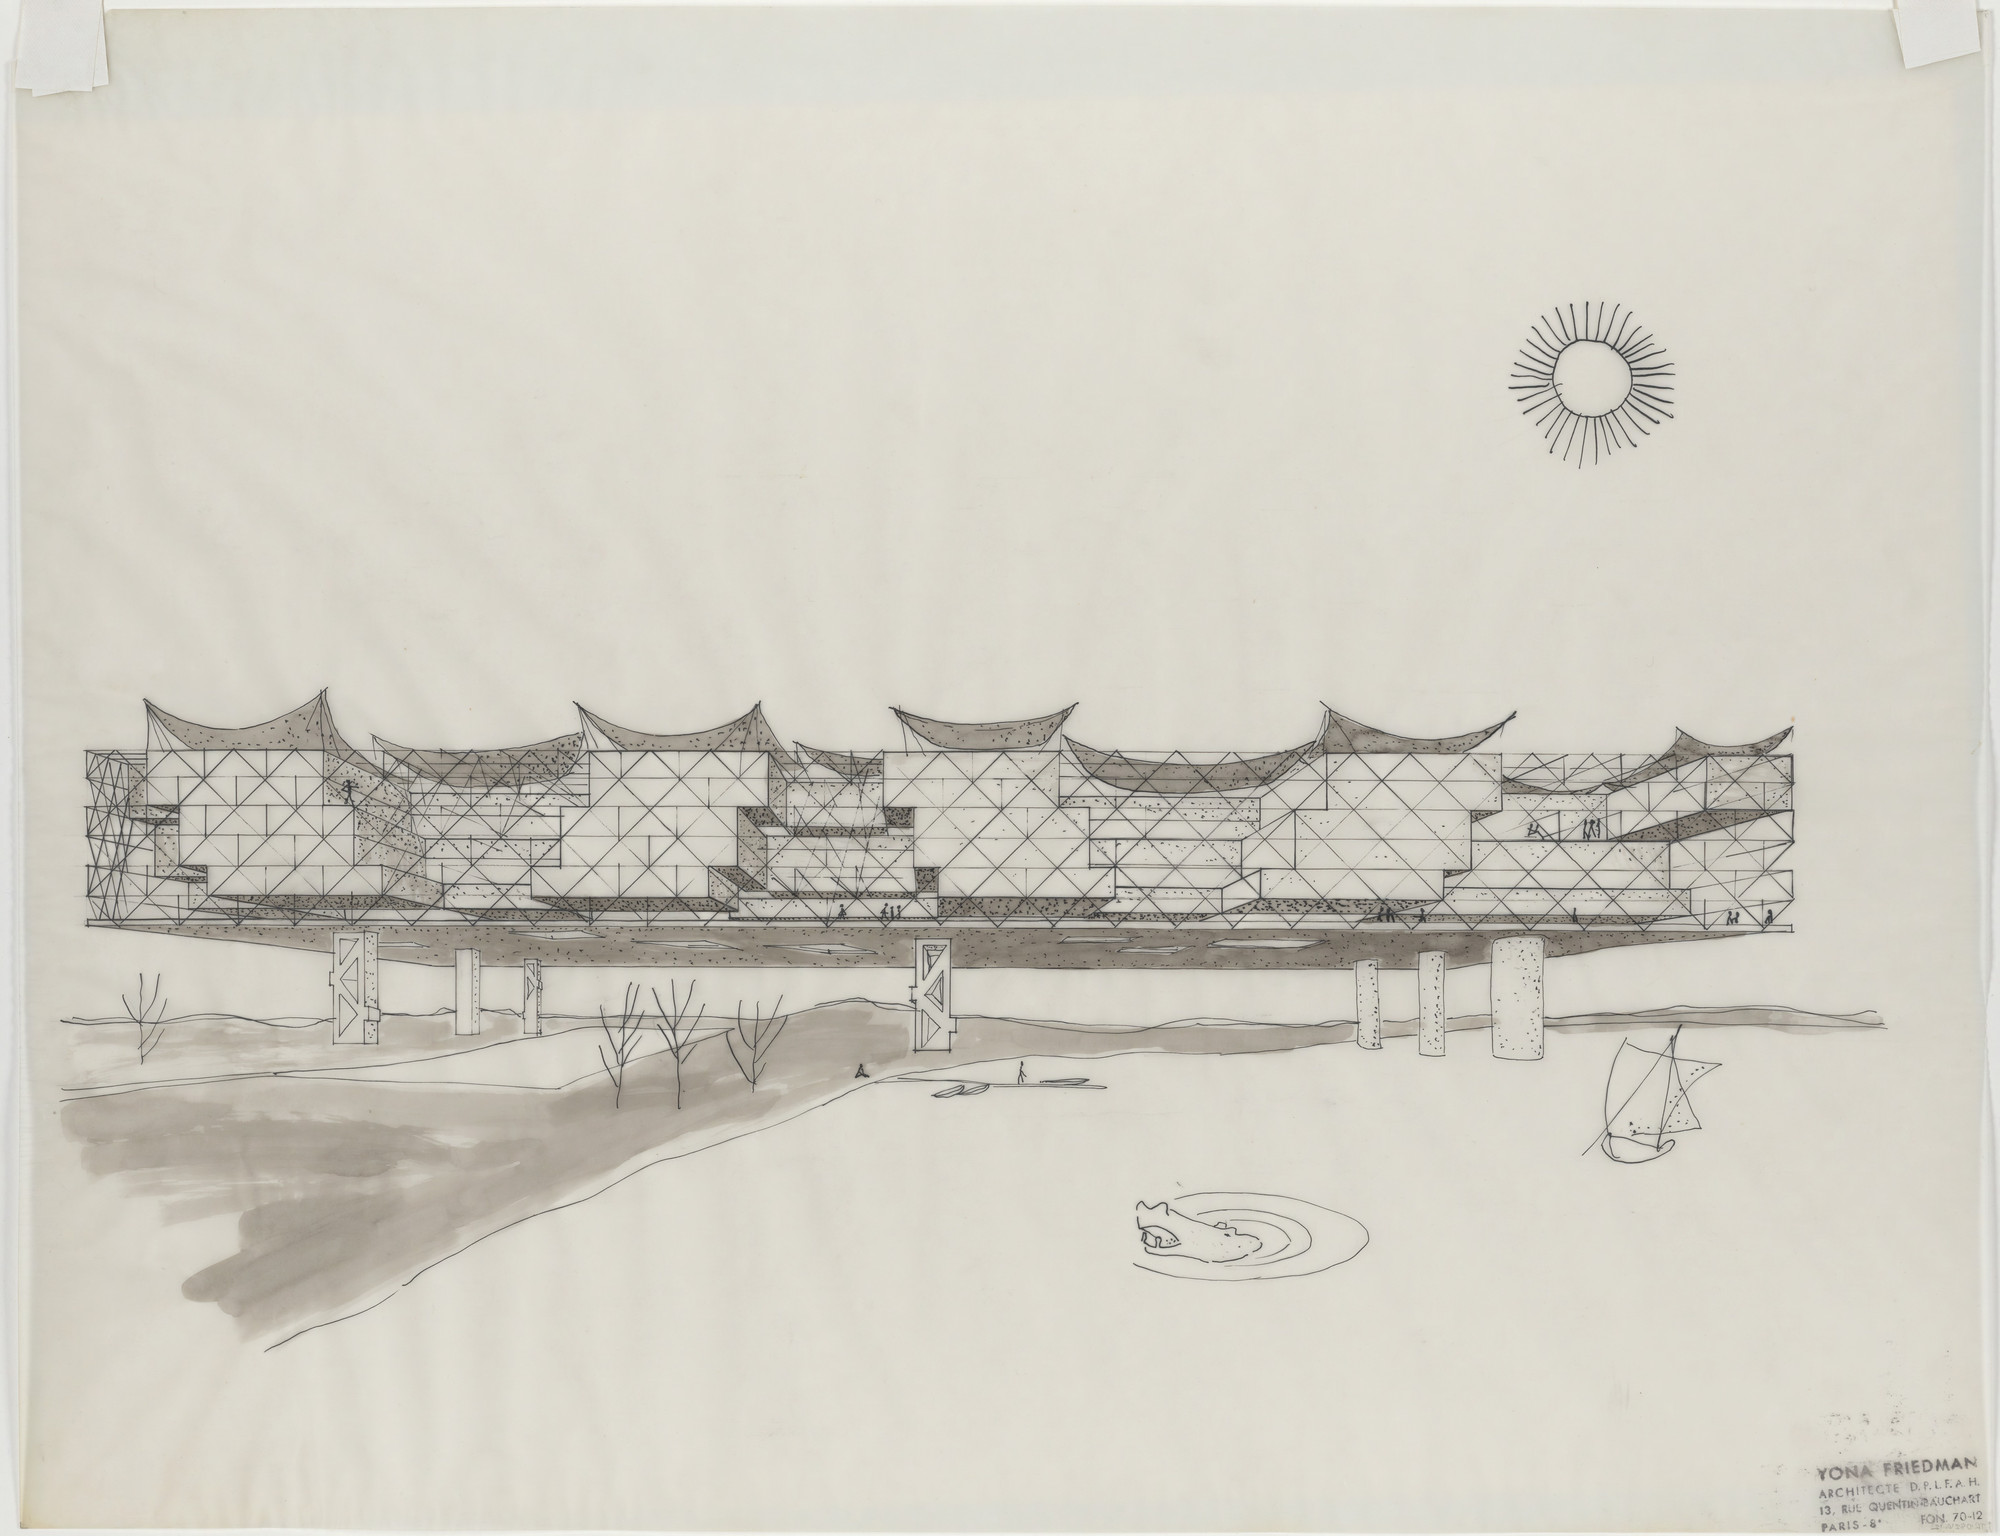 Yona Friedman. African Proposals, project, Perspective. 1959